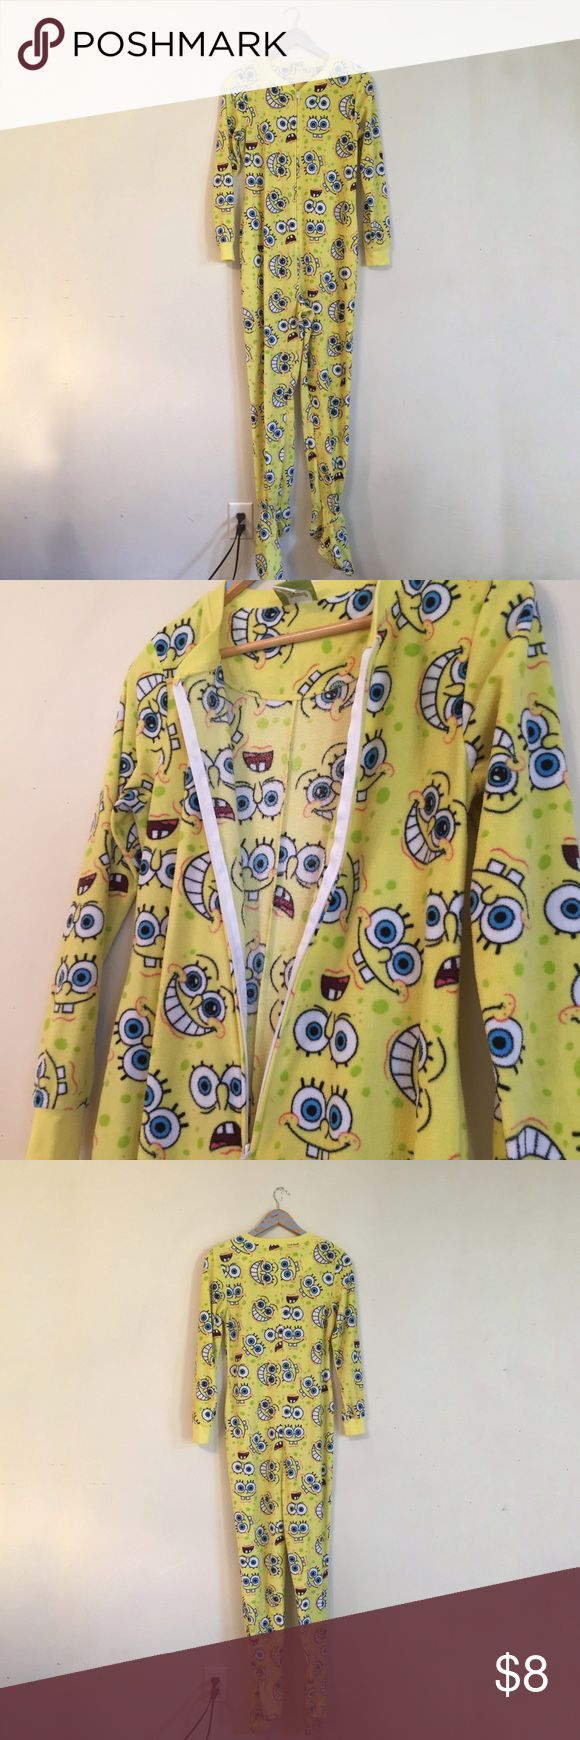 SpongeBob Onesie Measurements are available upon request. No models, swaps, or holds. Please do not make offers on items price $8 or under unless bundling.   Size: Medium. Not sure if women's or unisex. Brand: SpongeBob Fit: Formfitting, some stretch Sleeves:  Long sleeves Material: Color: Yellow, black, white, pink, blue Purchased at: Target Other details: Zips in front. SpongeBob face Print throughout Condition: Pre-loved. No noteworthy flaws MSRP $29.99  For shipping purposes: Item…